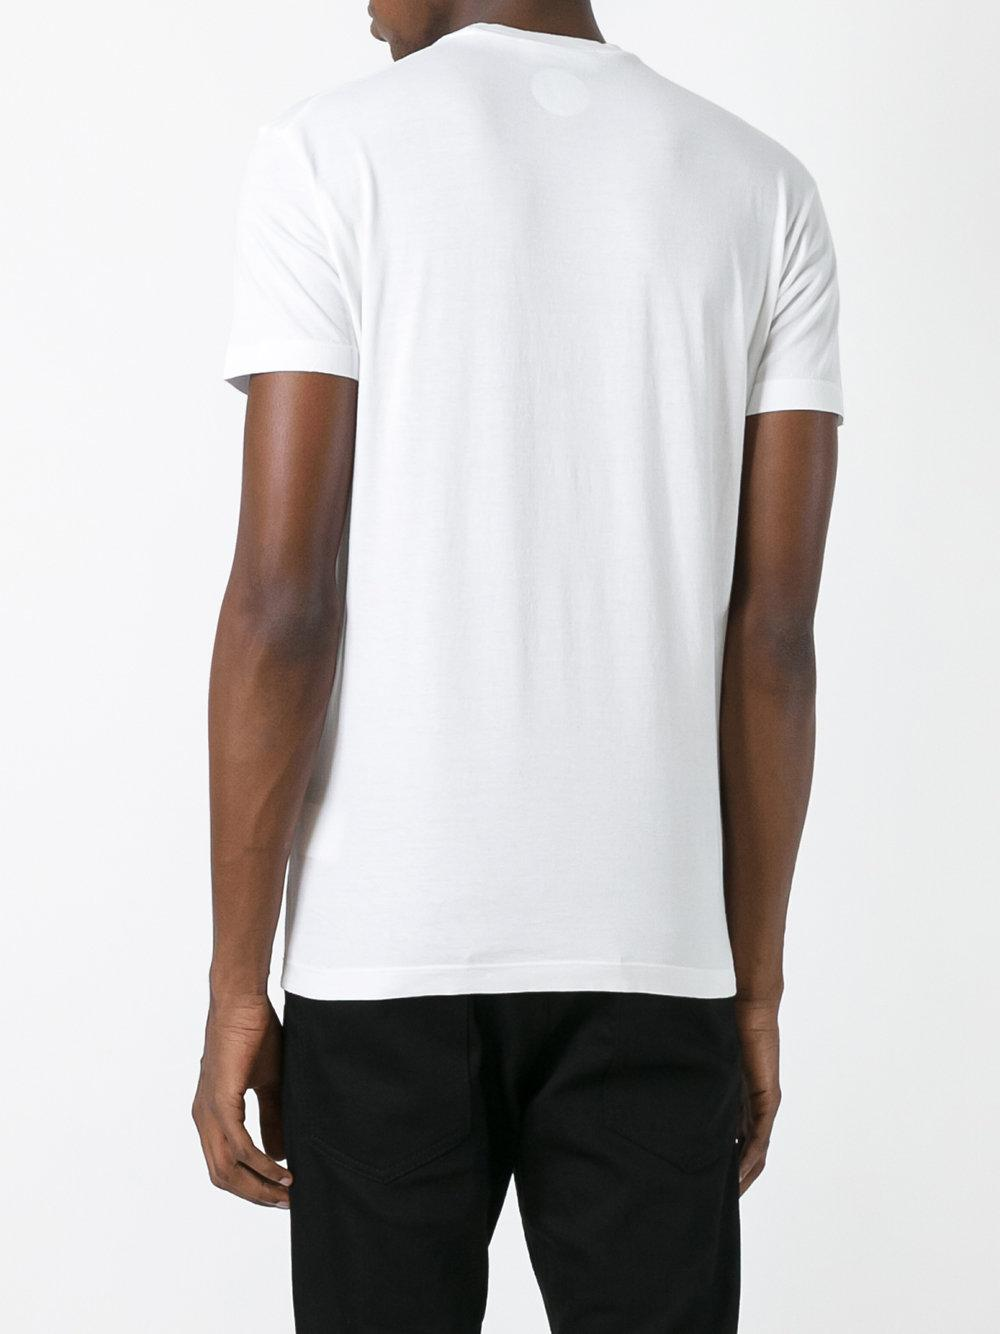 Lyst dsquared vintage embroidered logo t shirt in white for Embroidered logos on shirts